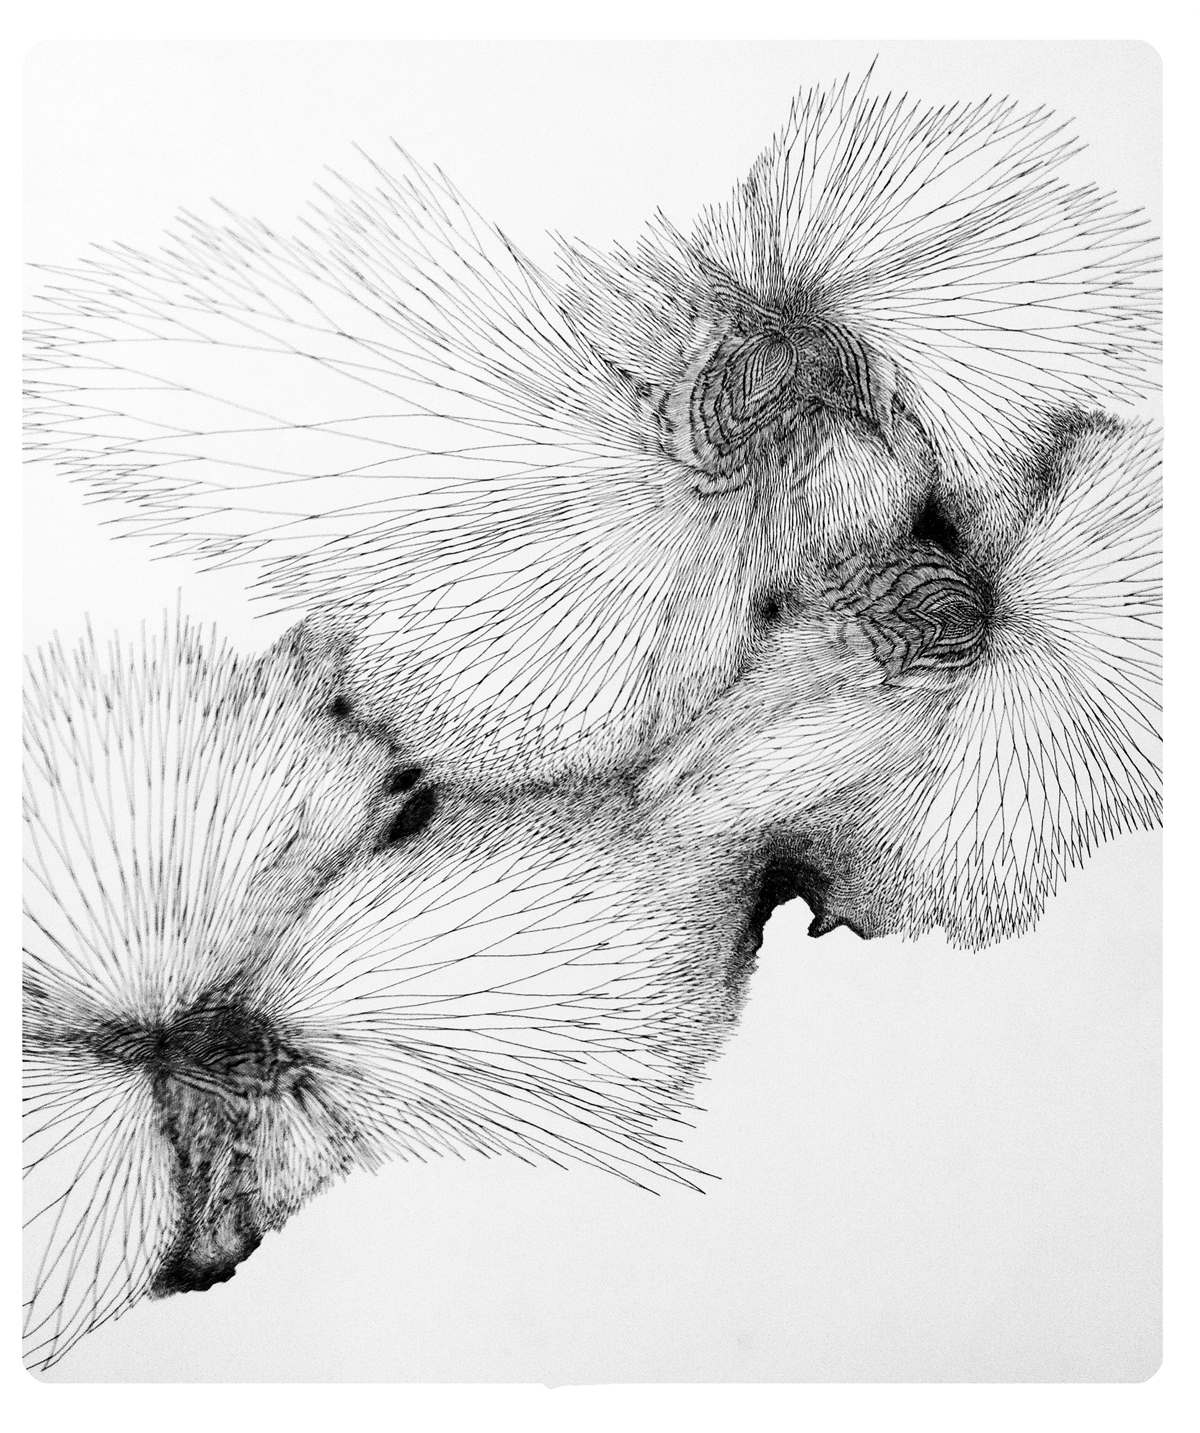 RoGallery Hans Georg Rauch, Etching - Drawings And Illustrations ...